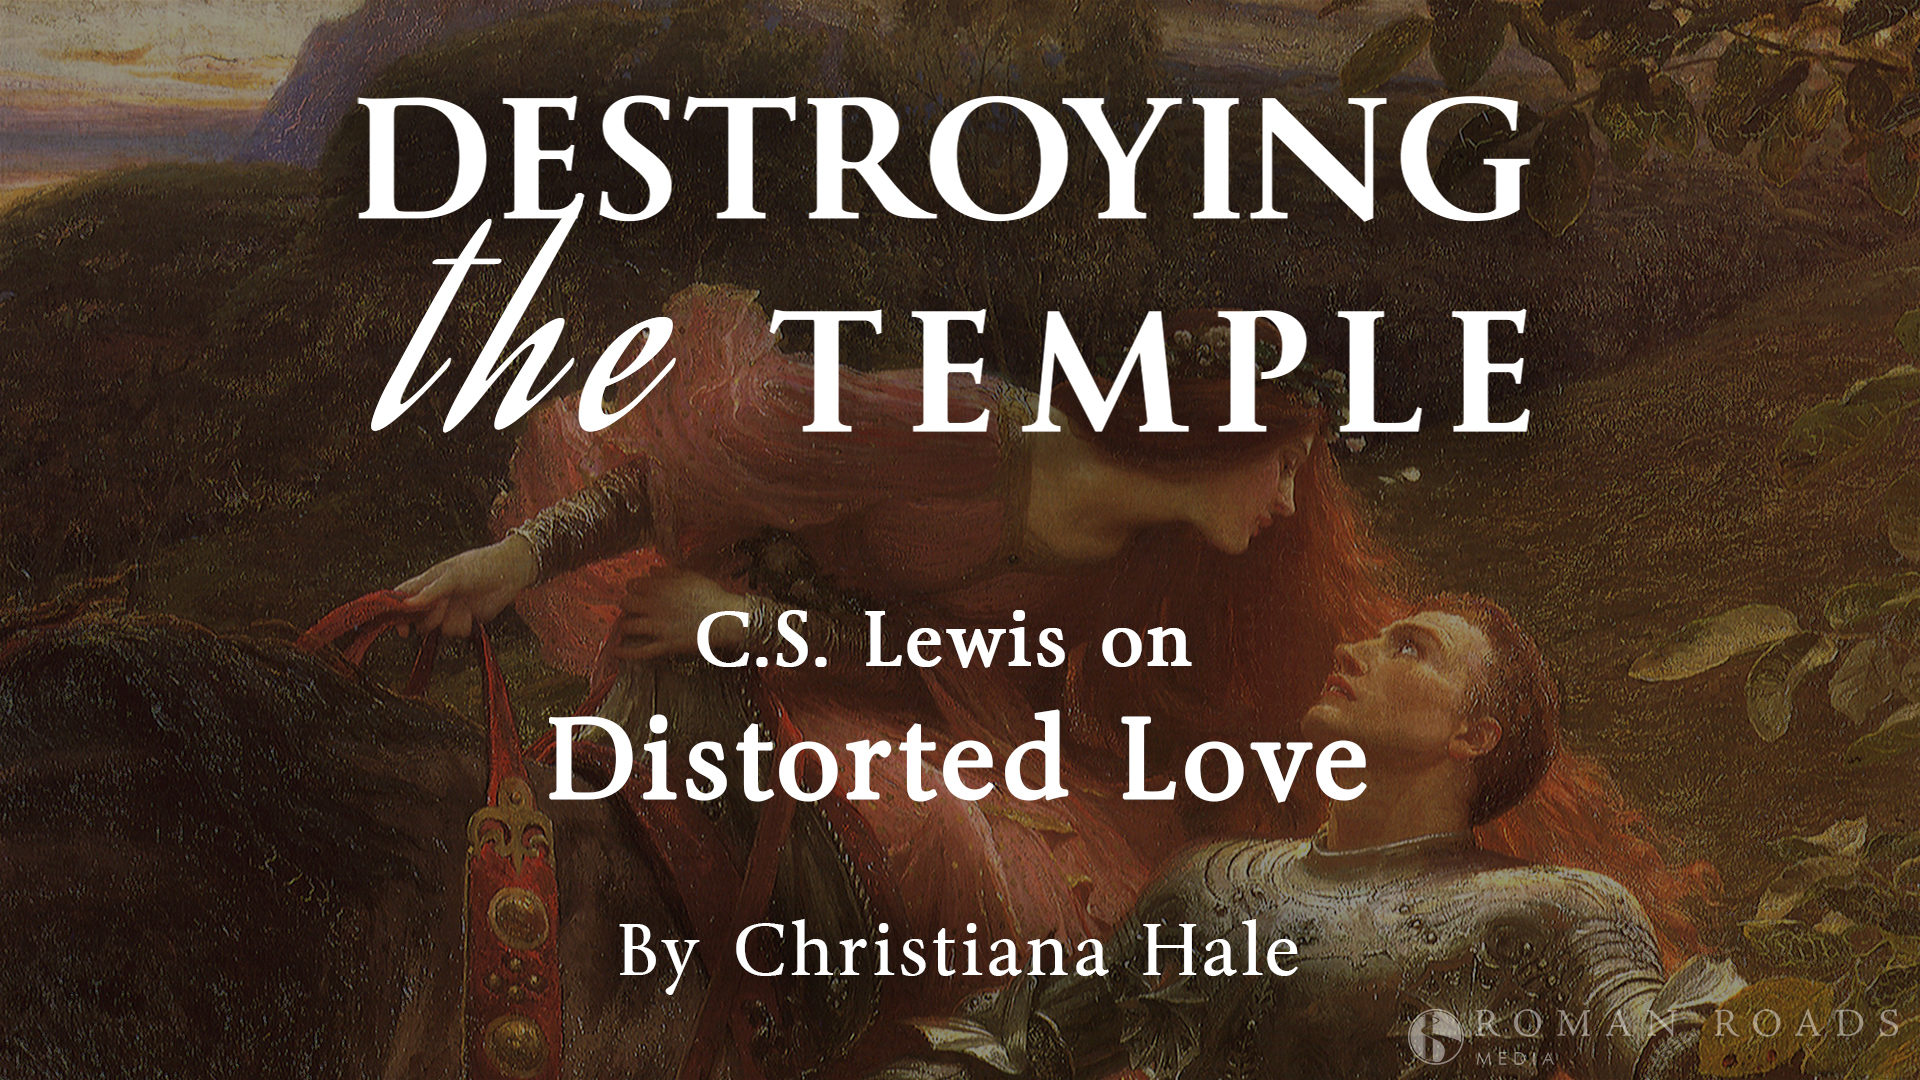 DESTROYING the TEMPLE: C.S. Lewis on Distorted Love